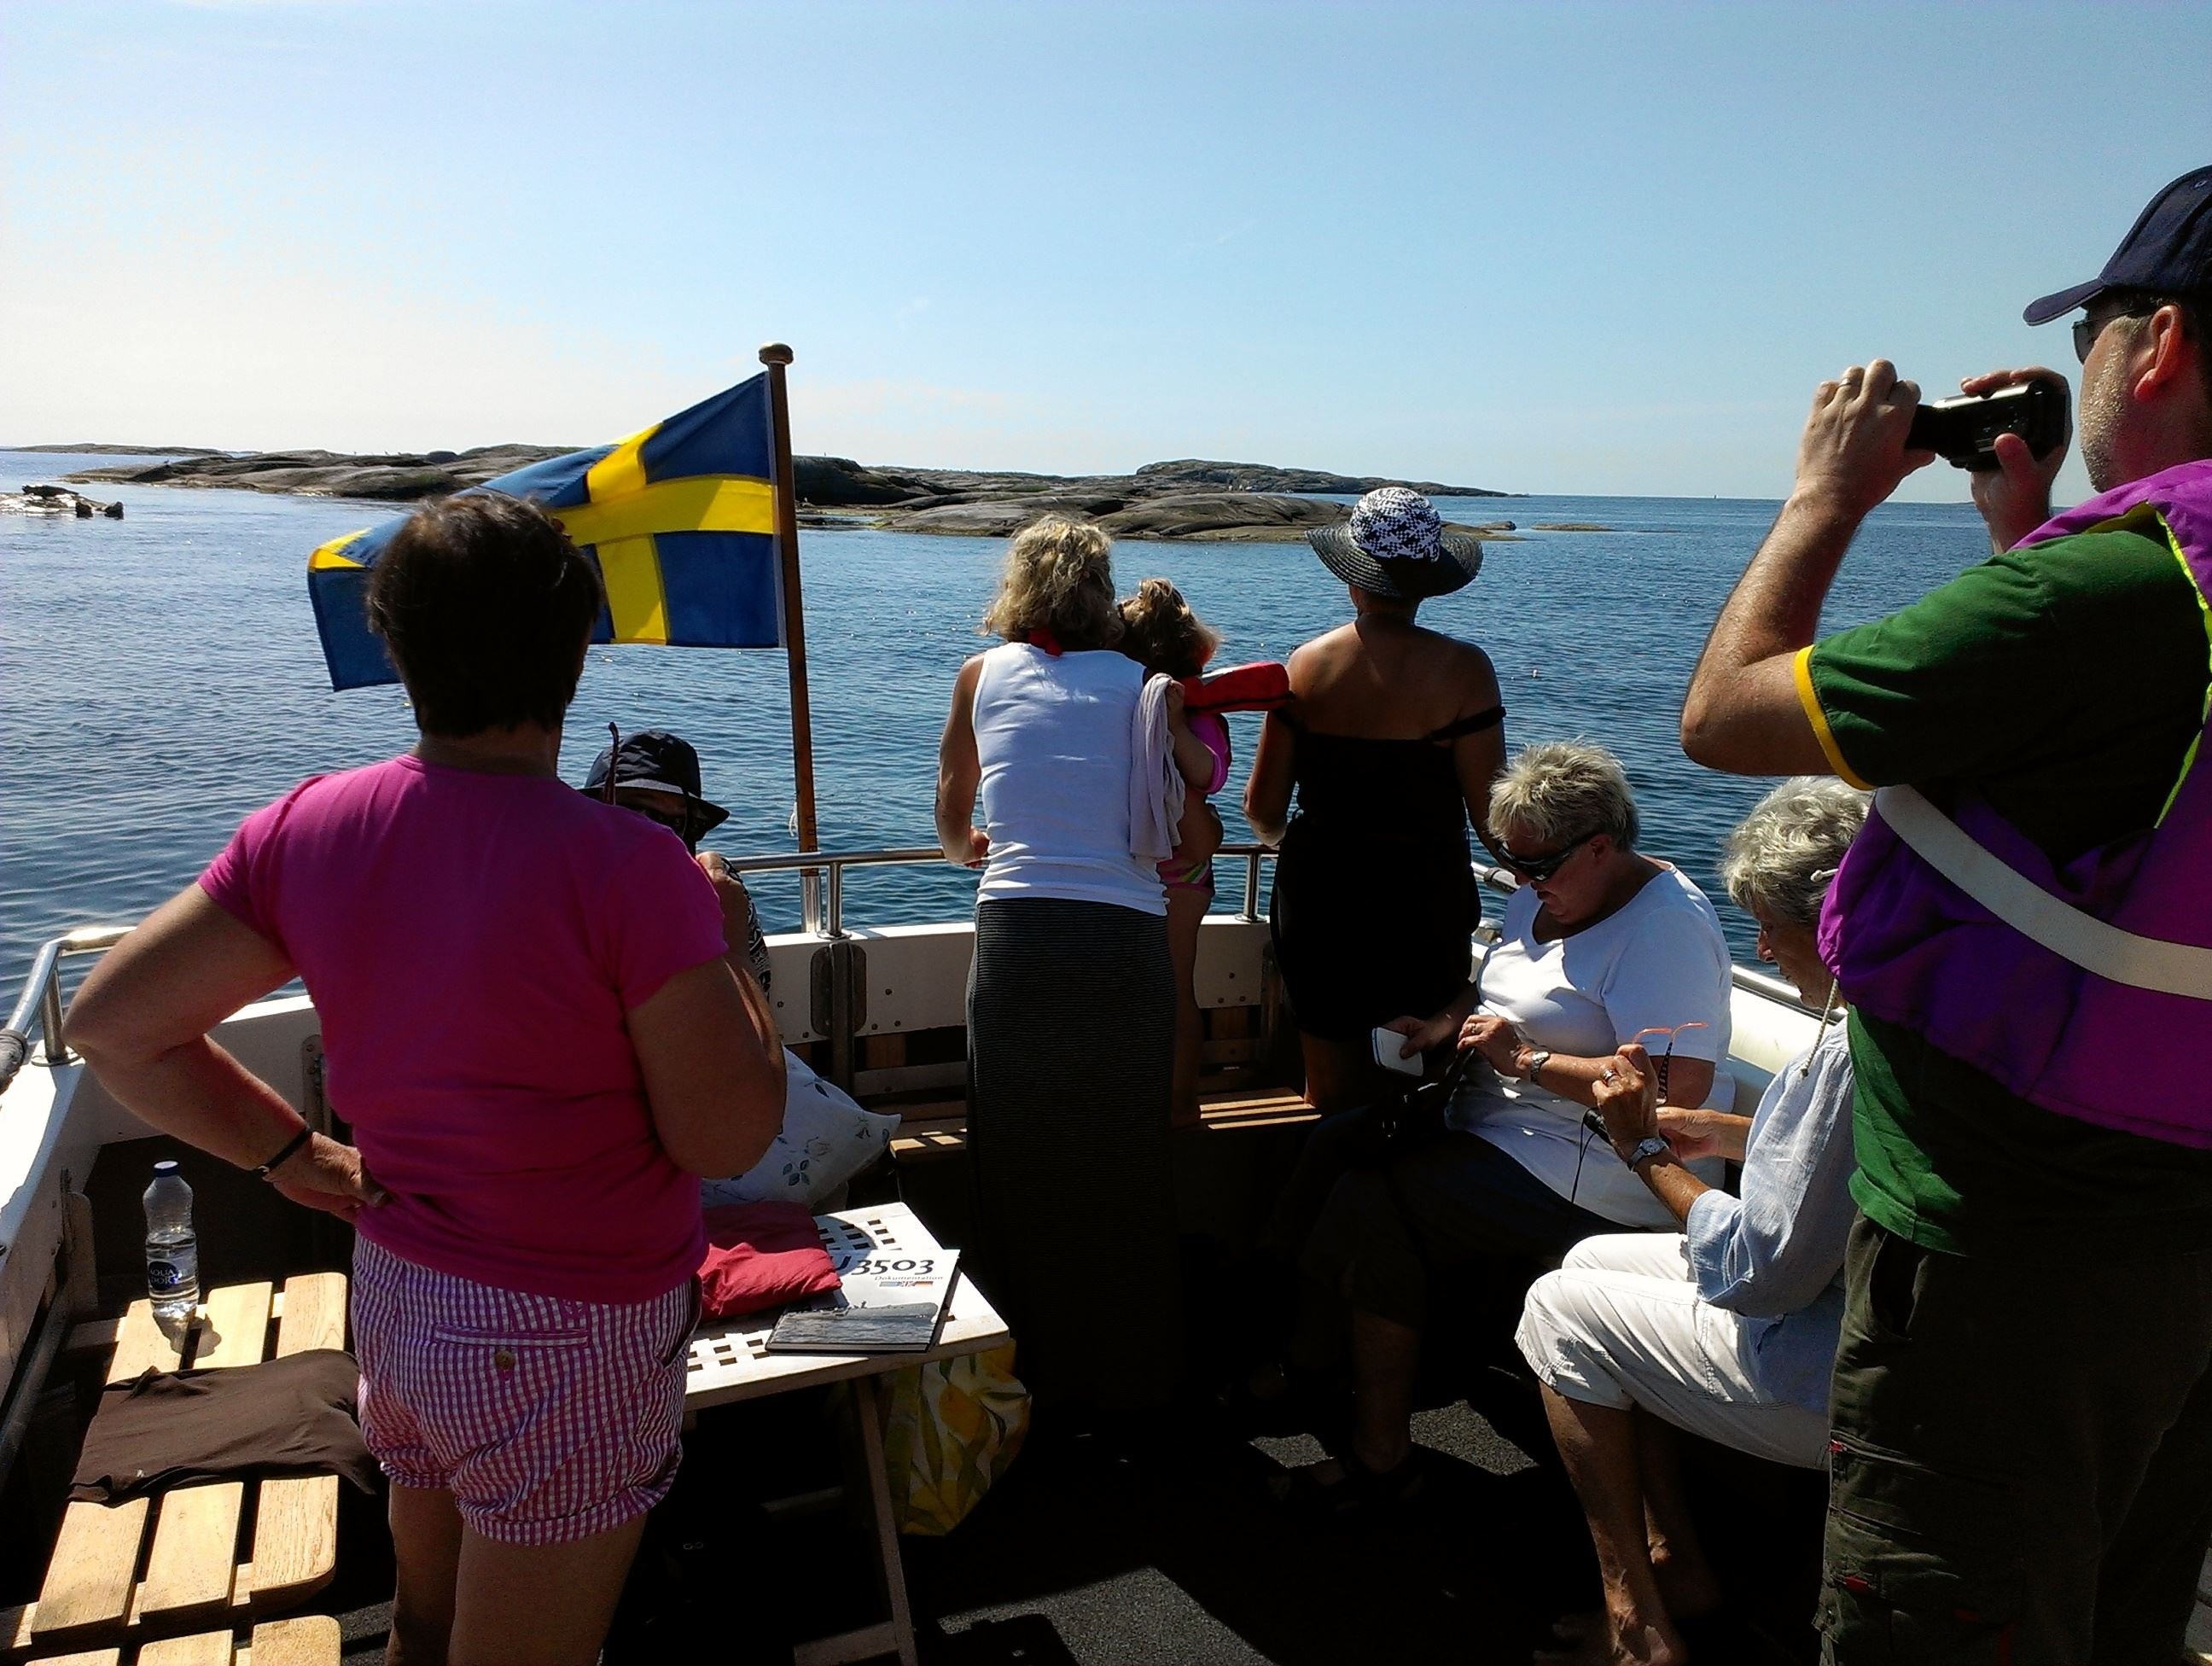 Guided tour in the archipelago